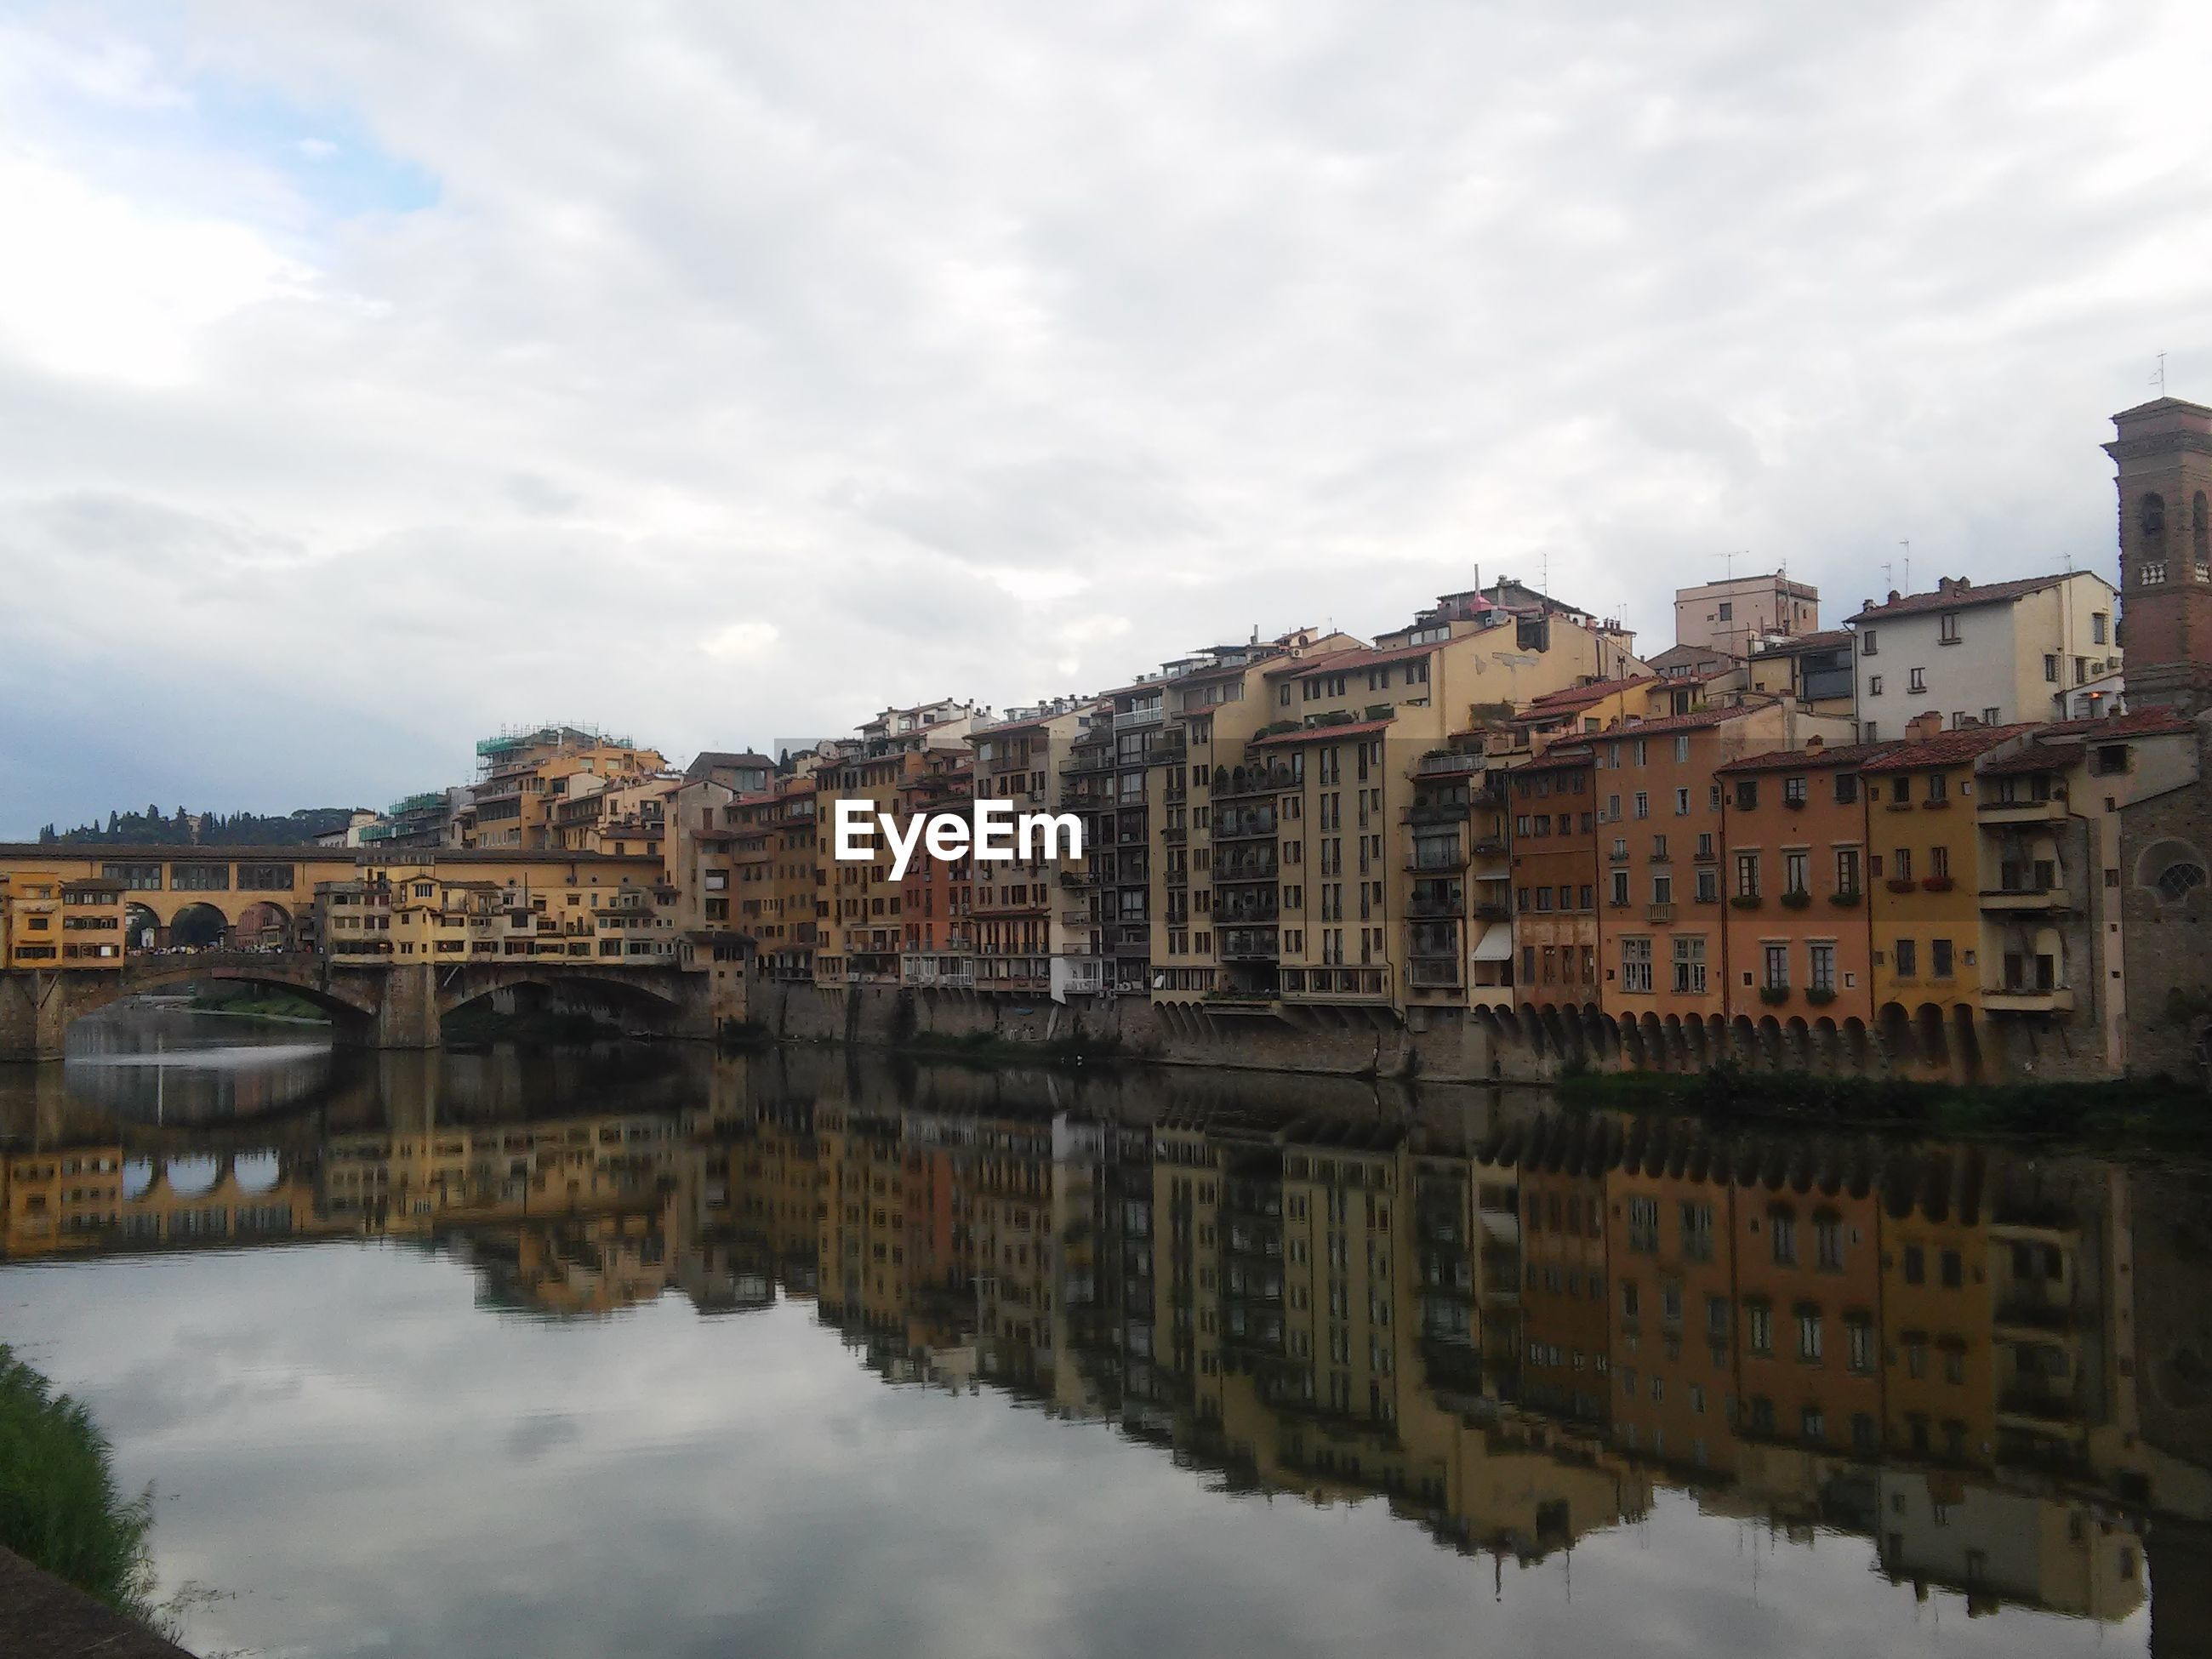 Reflection of buildings on river against sky in city